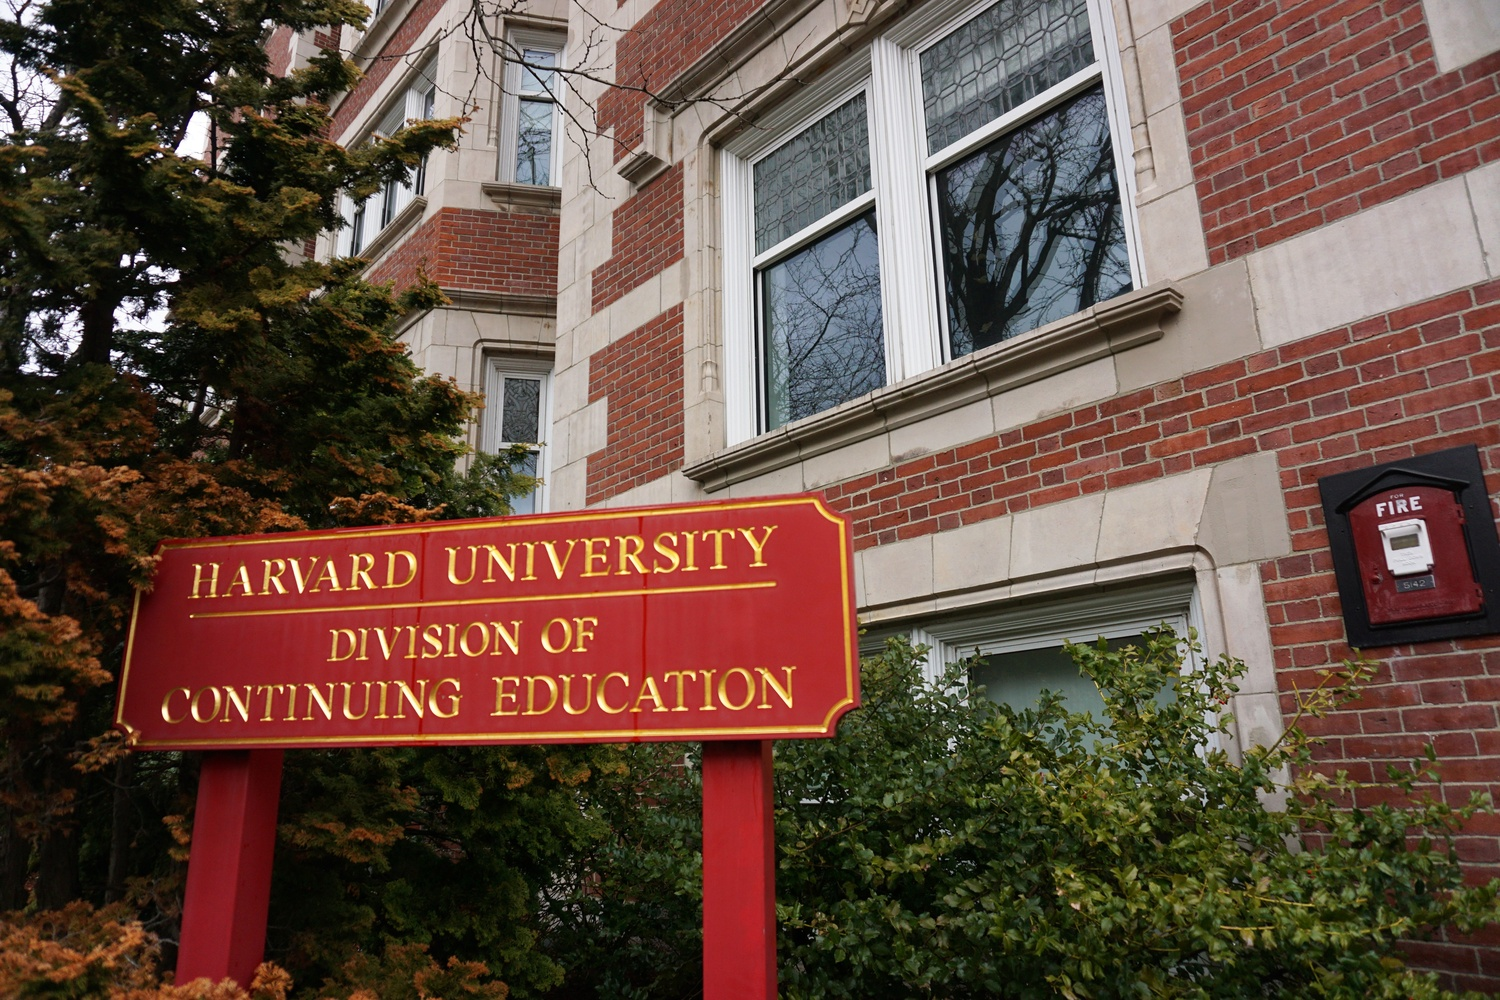 Located on Brattle Street, the Harvard Division of Continuing Education offers courses, degrees and certificates, and professional development programs.